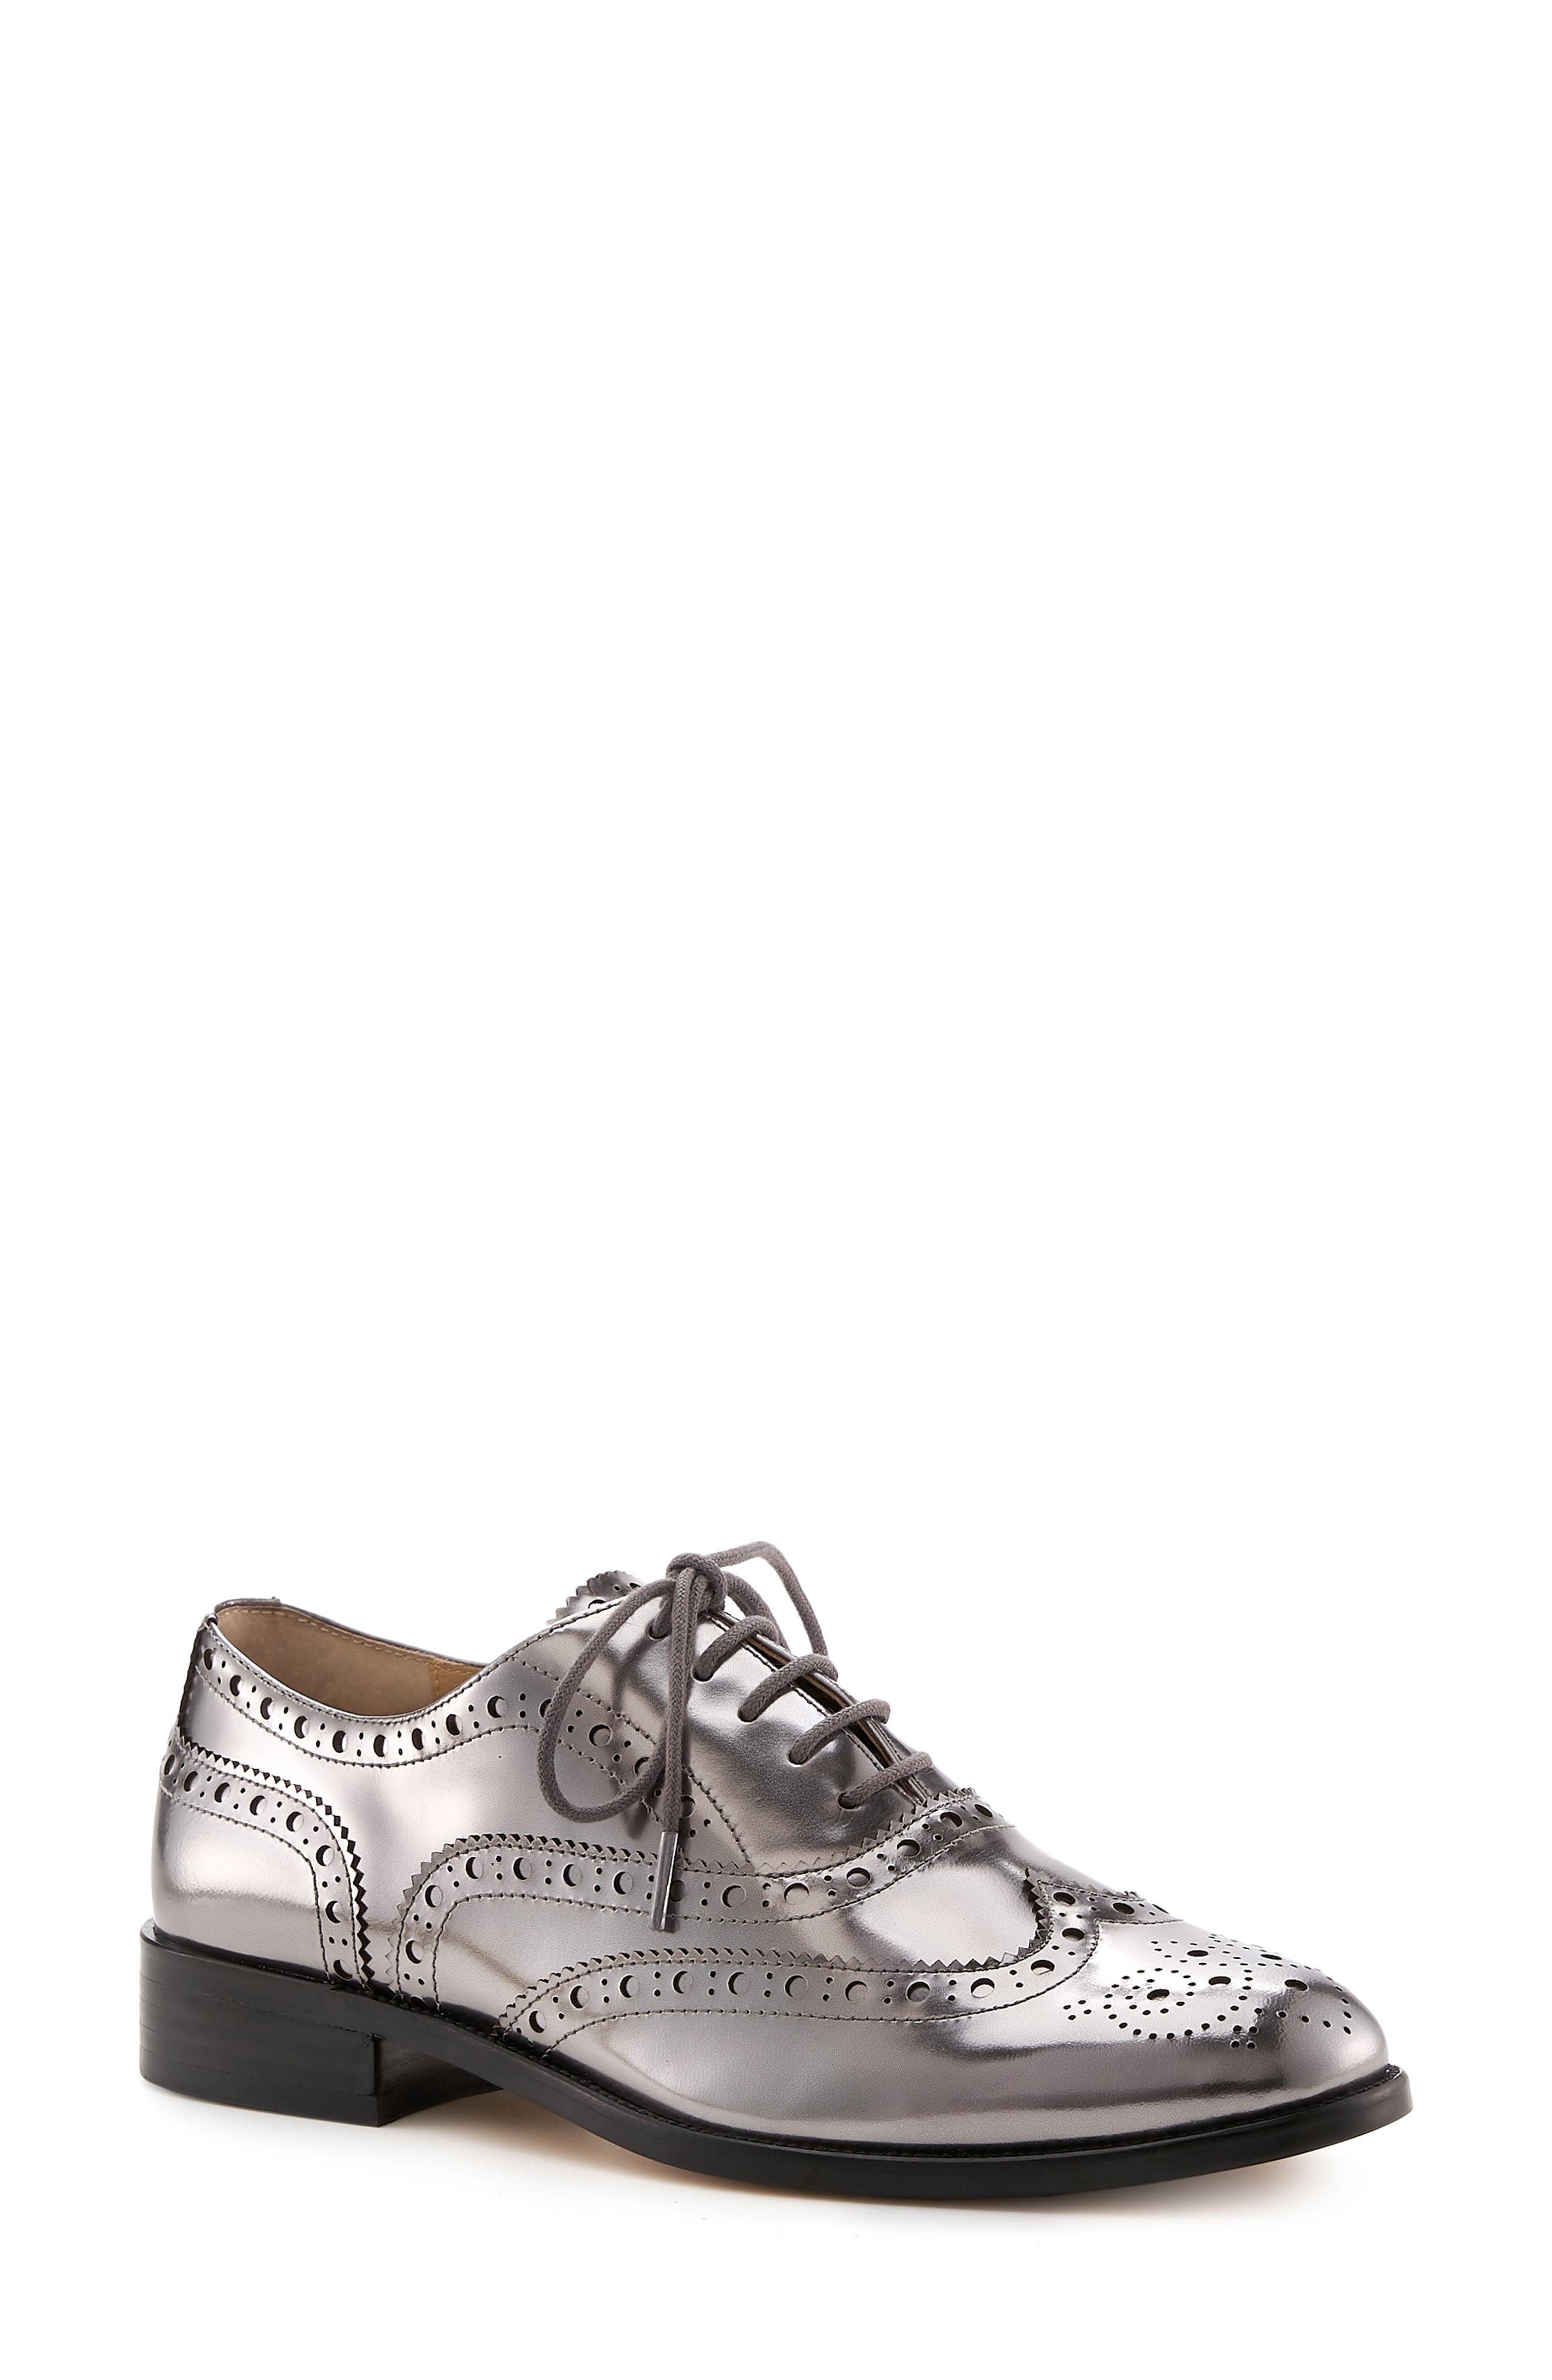 BOTKIER Calista Metallic Wingtip Oxford, Main, color, PEWTER METALLIC